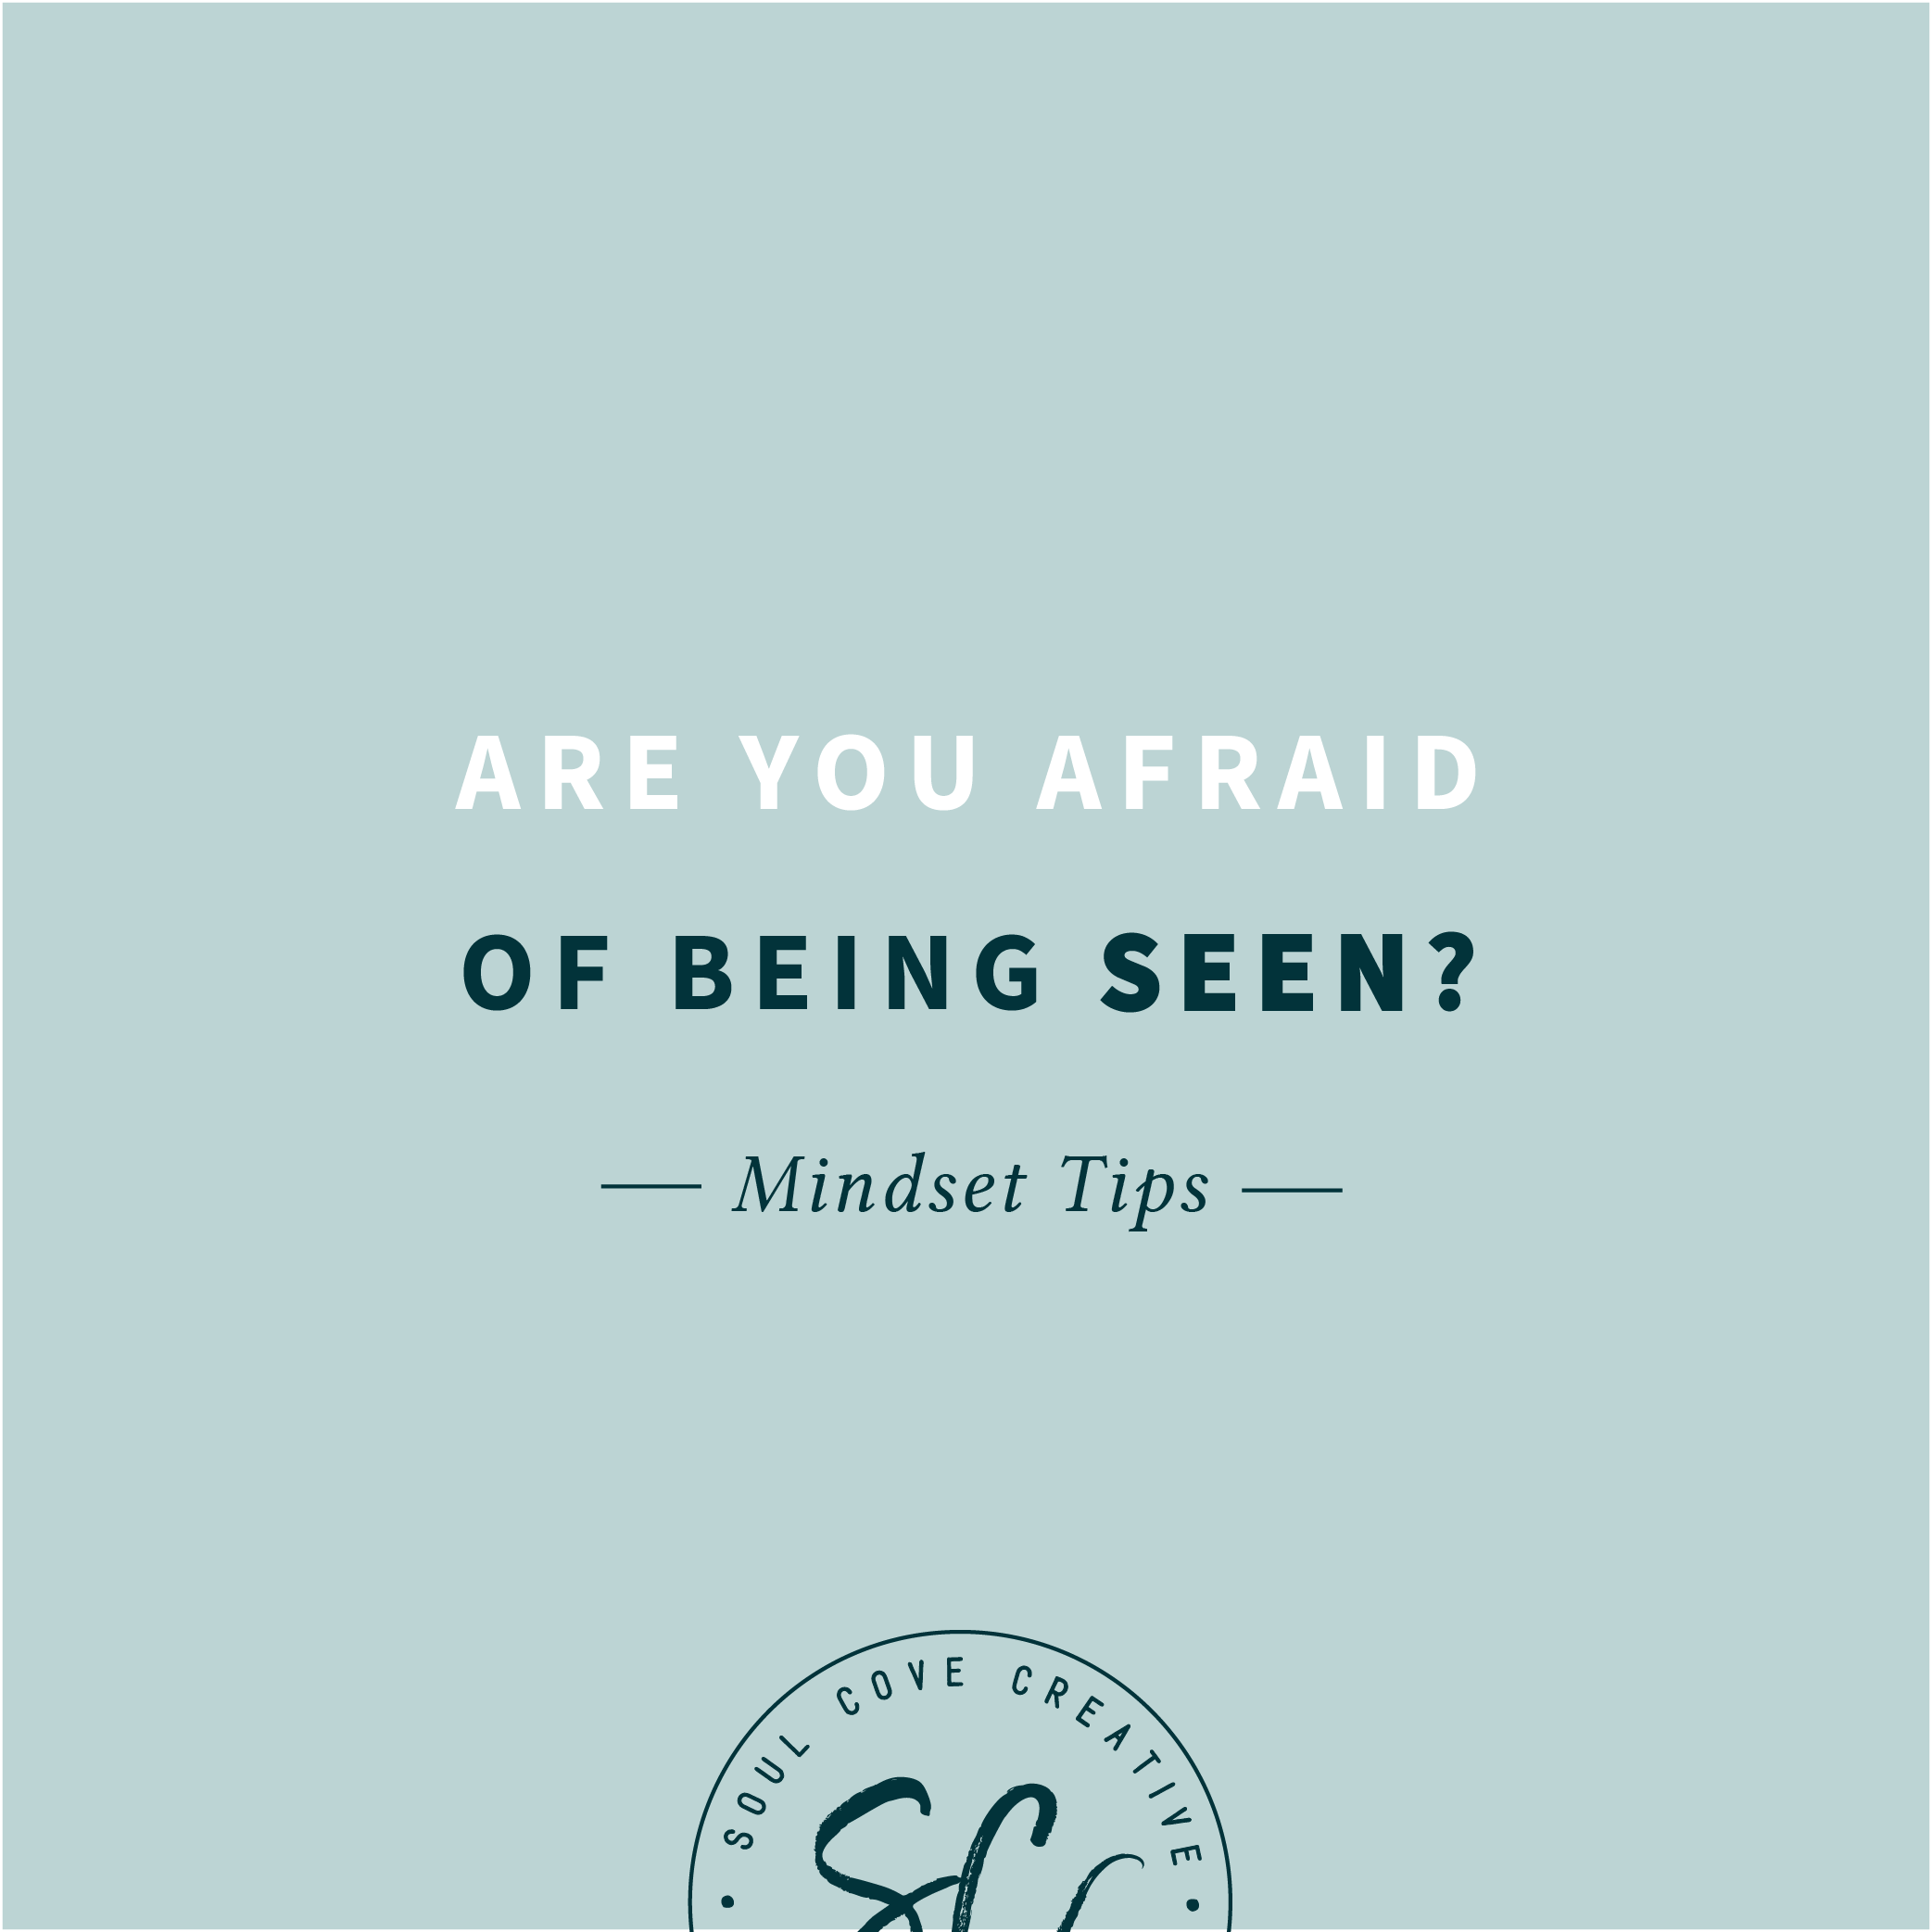 Are you afraid of being seen?